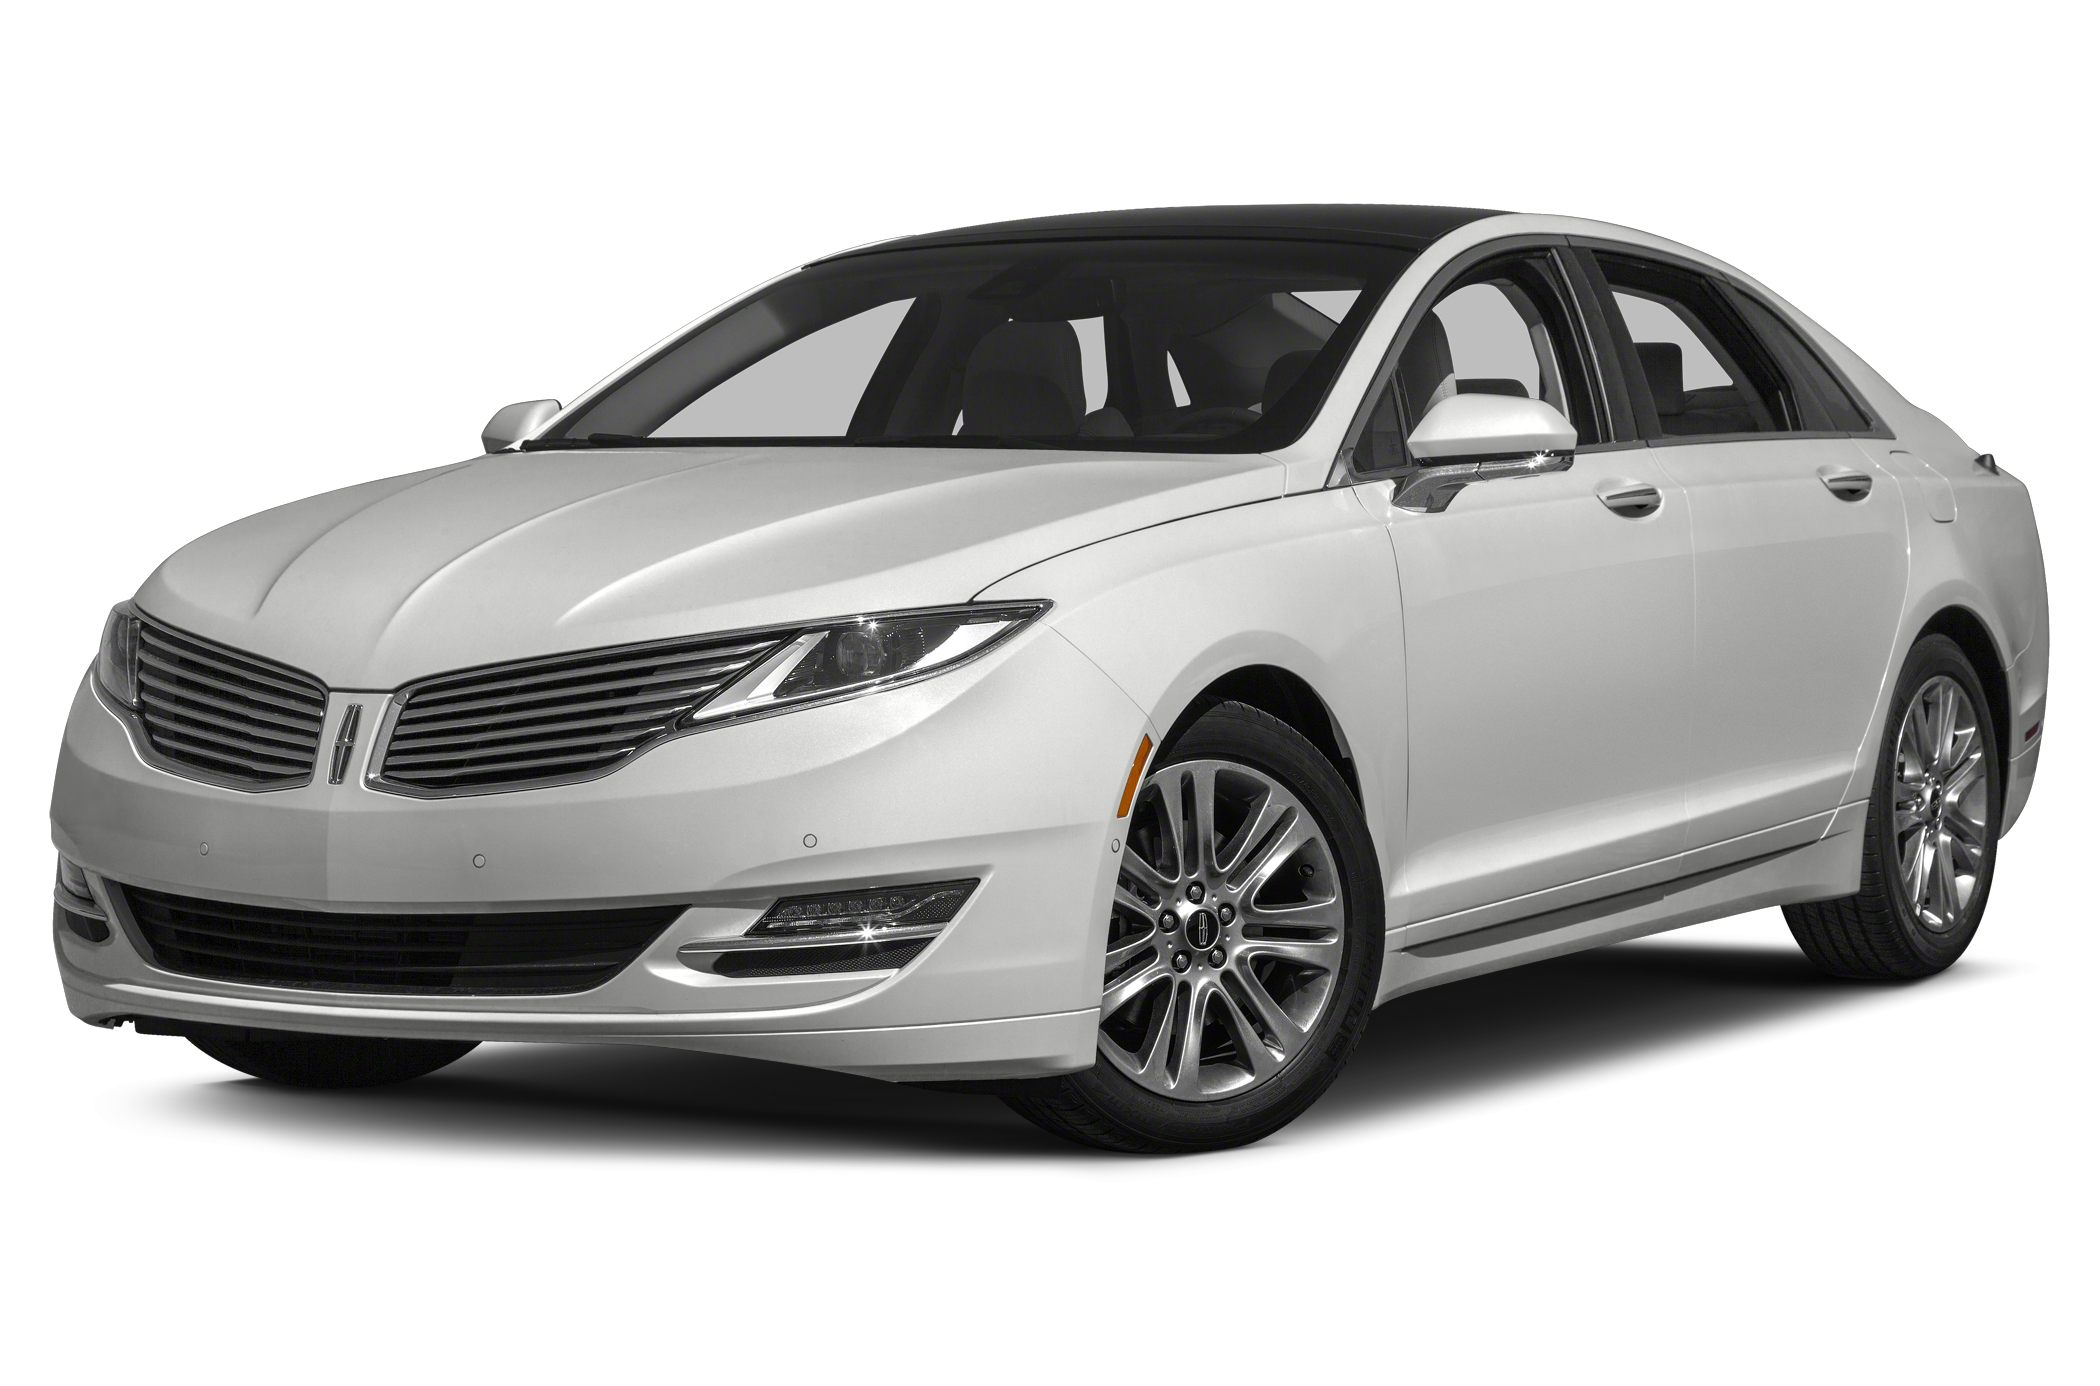 2015 Lincoln MKZ Base Sedan for sale in Liberty for $42,795 with 5 miles.